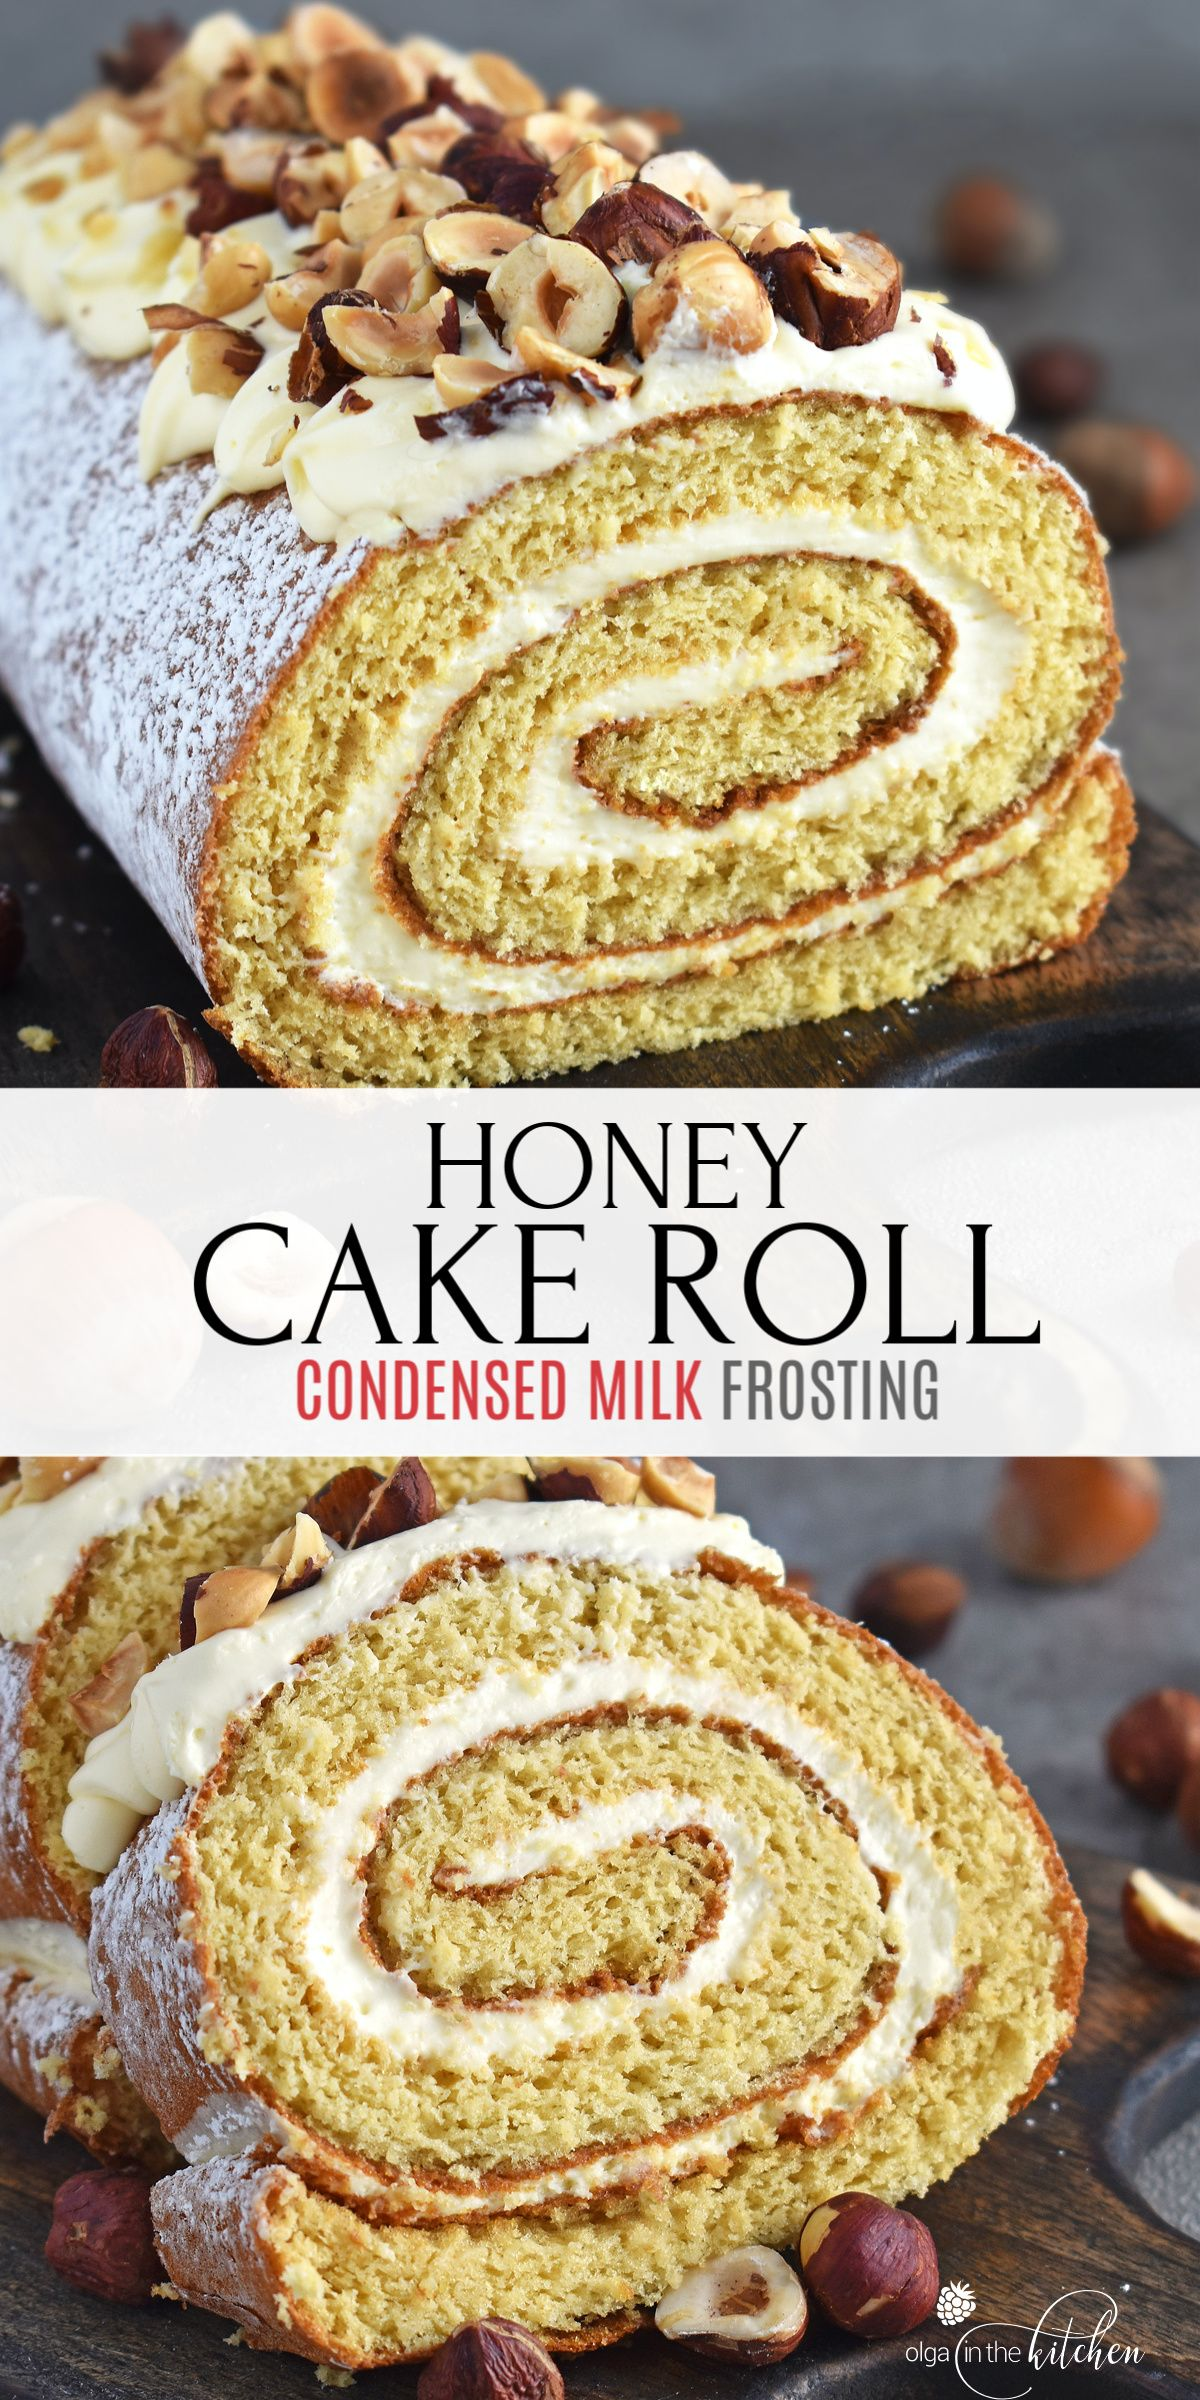 Honey Cake Roll With Condensed Milk Frosting Olga In The Kitchen Recipe In 2020 Cake Roll Cake Roll Recipes Honey Cake Recipe